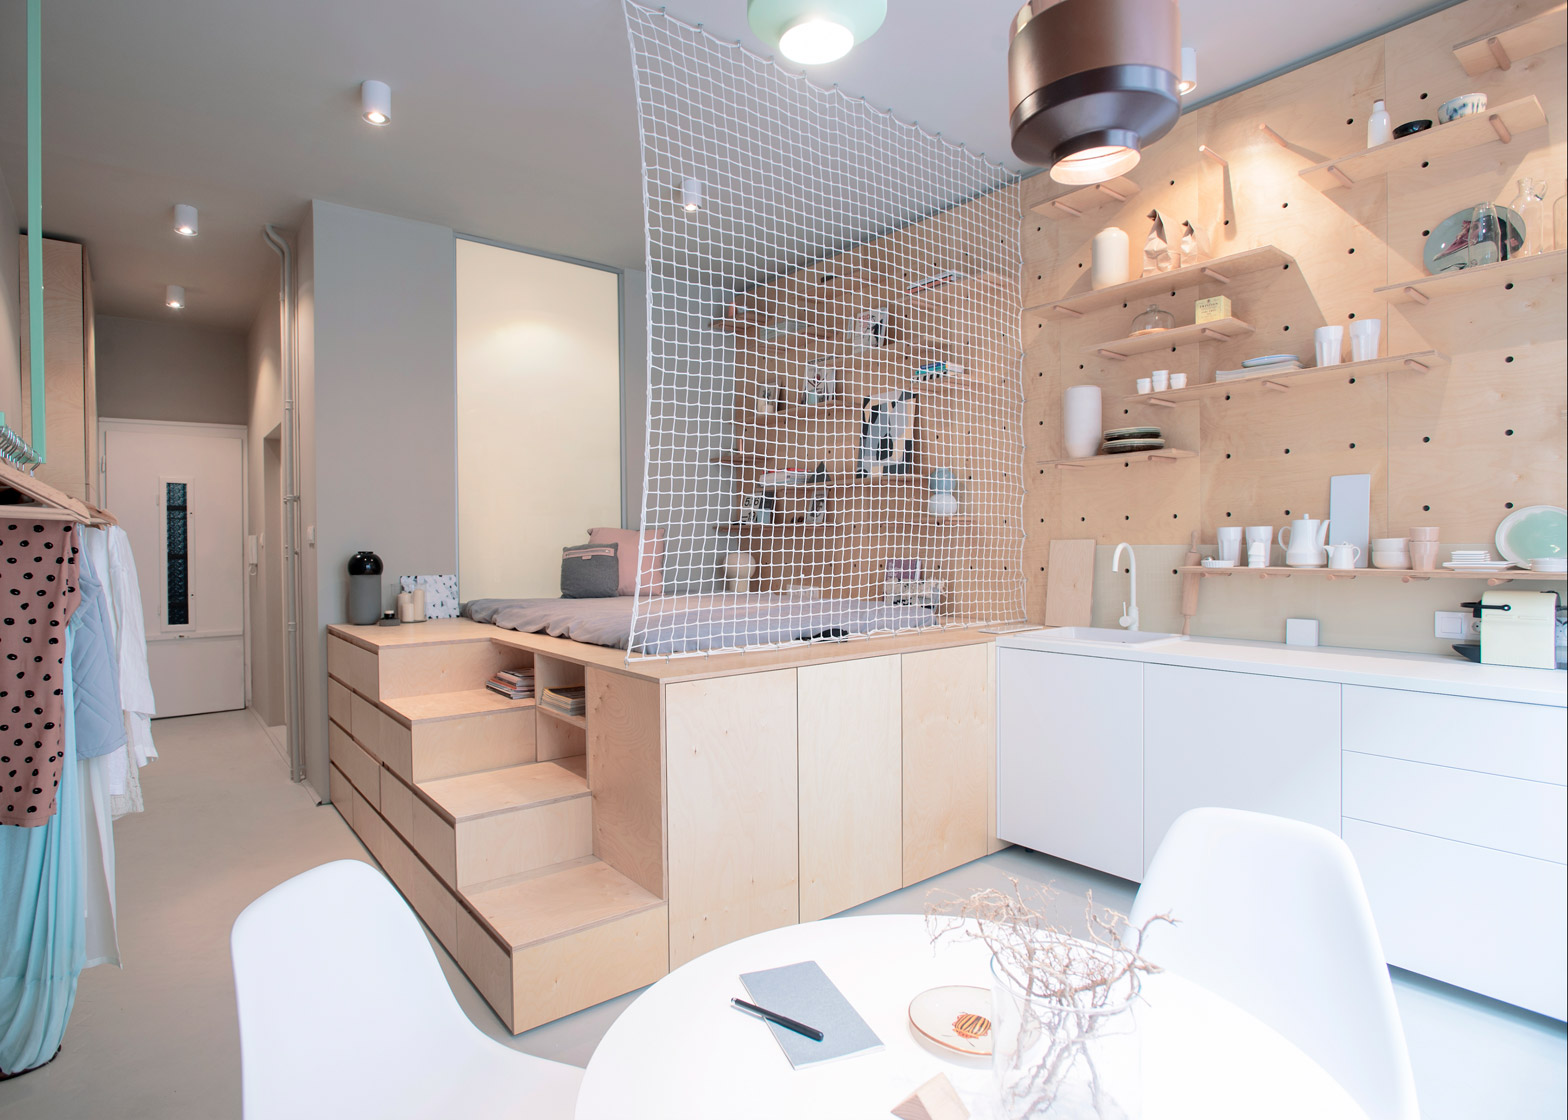 Compact living airbnb nordic days by flor linckens - Living in small spaces home minimalist ...